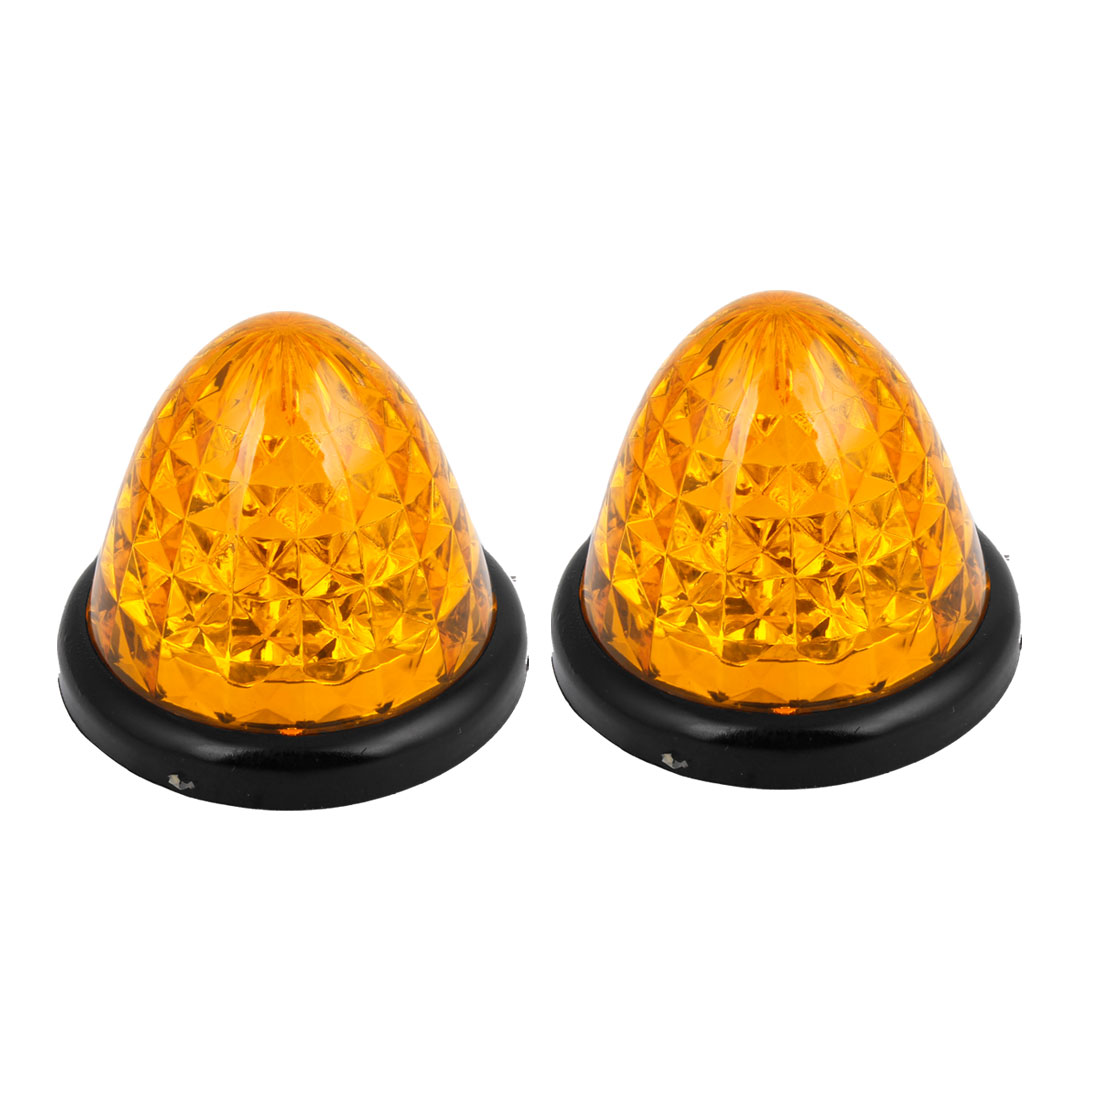 2 Pcs Vehicle Car Lighting Cone Shaped Wired 17 Yellow LEDs Light Lamp